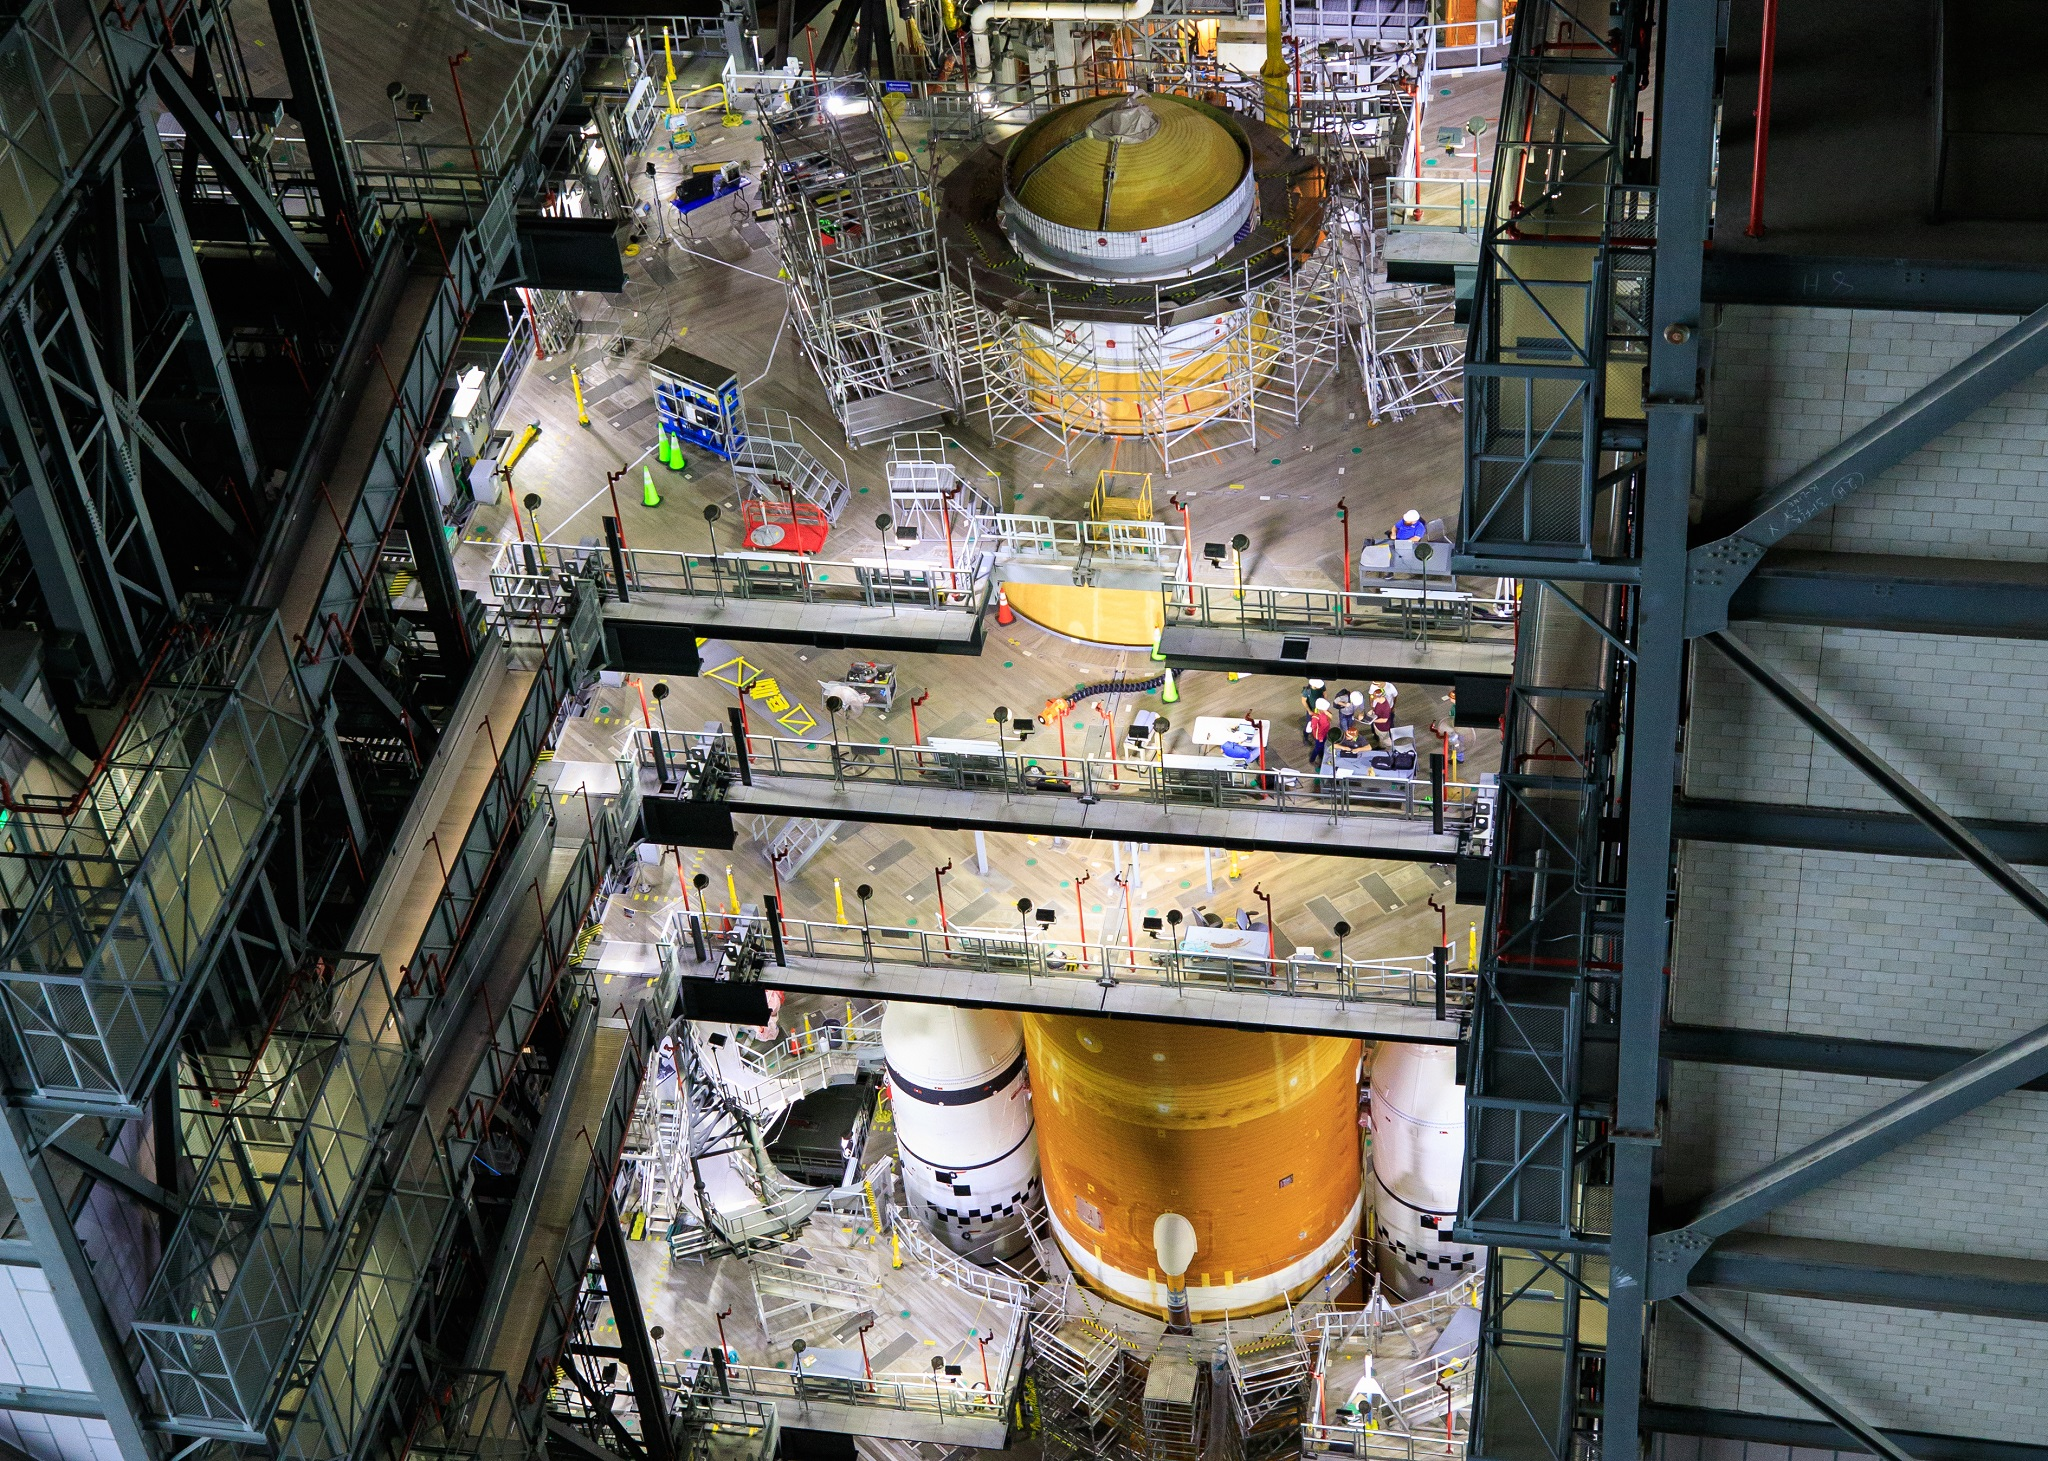 SLS engineering tests to accompany pre-launch checkouts for Artemis 1